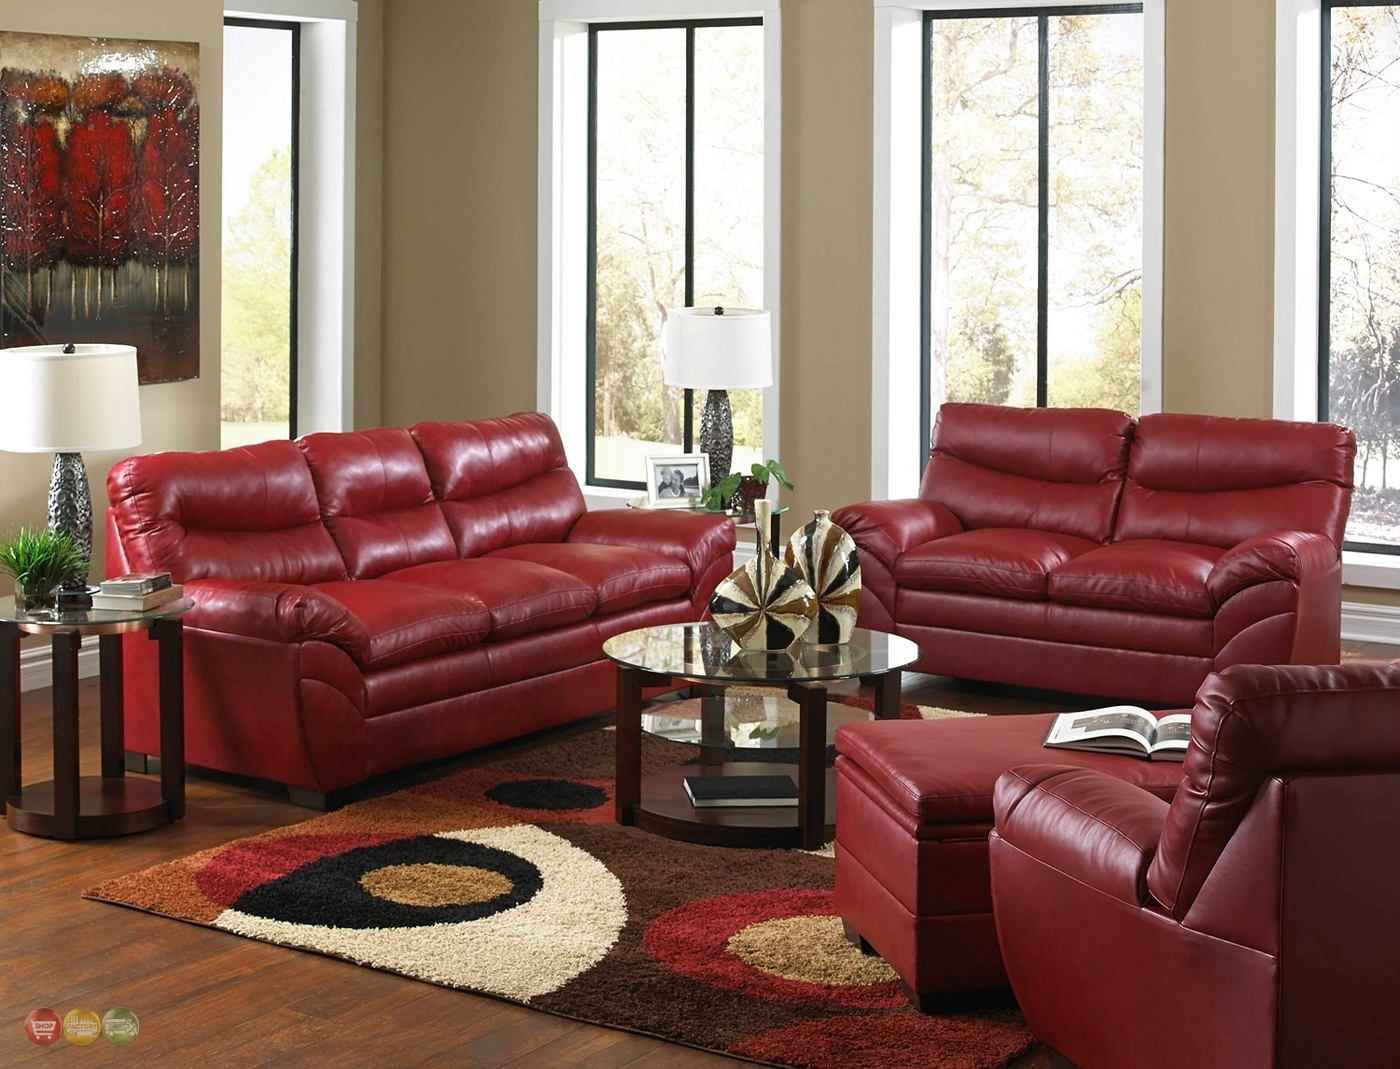 Red Leather Living Room Furniture | Living Room Decor Inside Red Leather Couches For Living Room (Image 7 of 10)